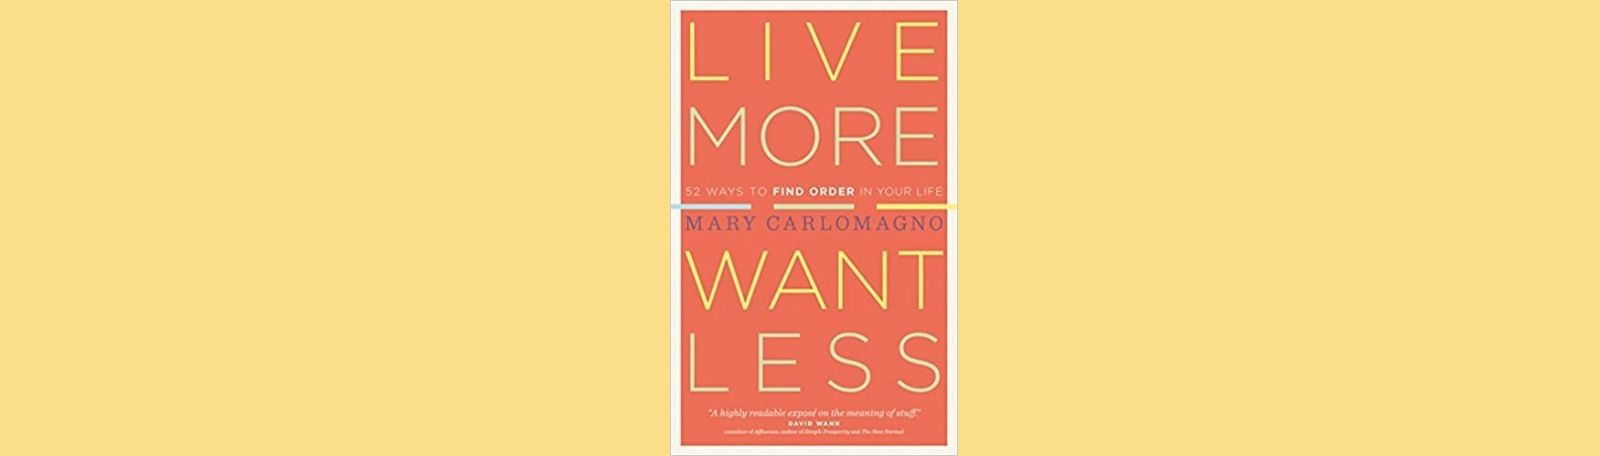 """Featured image for """"Live More Want Less"""""""